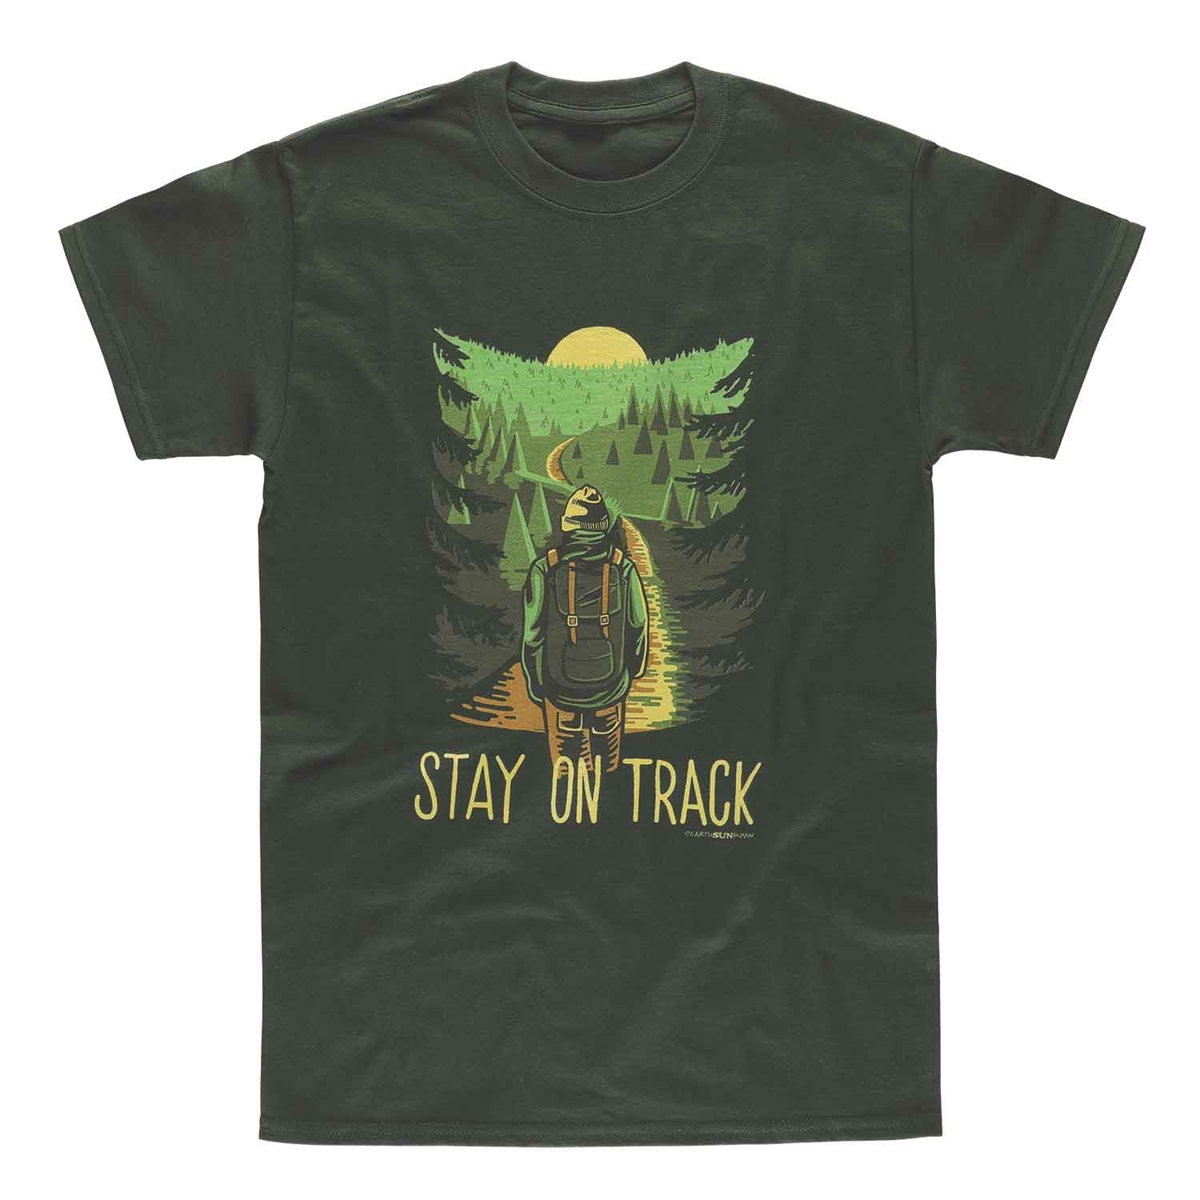 Stay on Track Tee